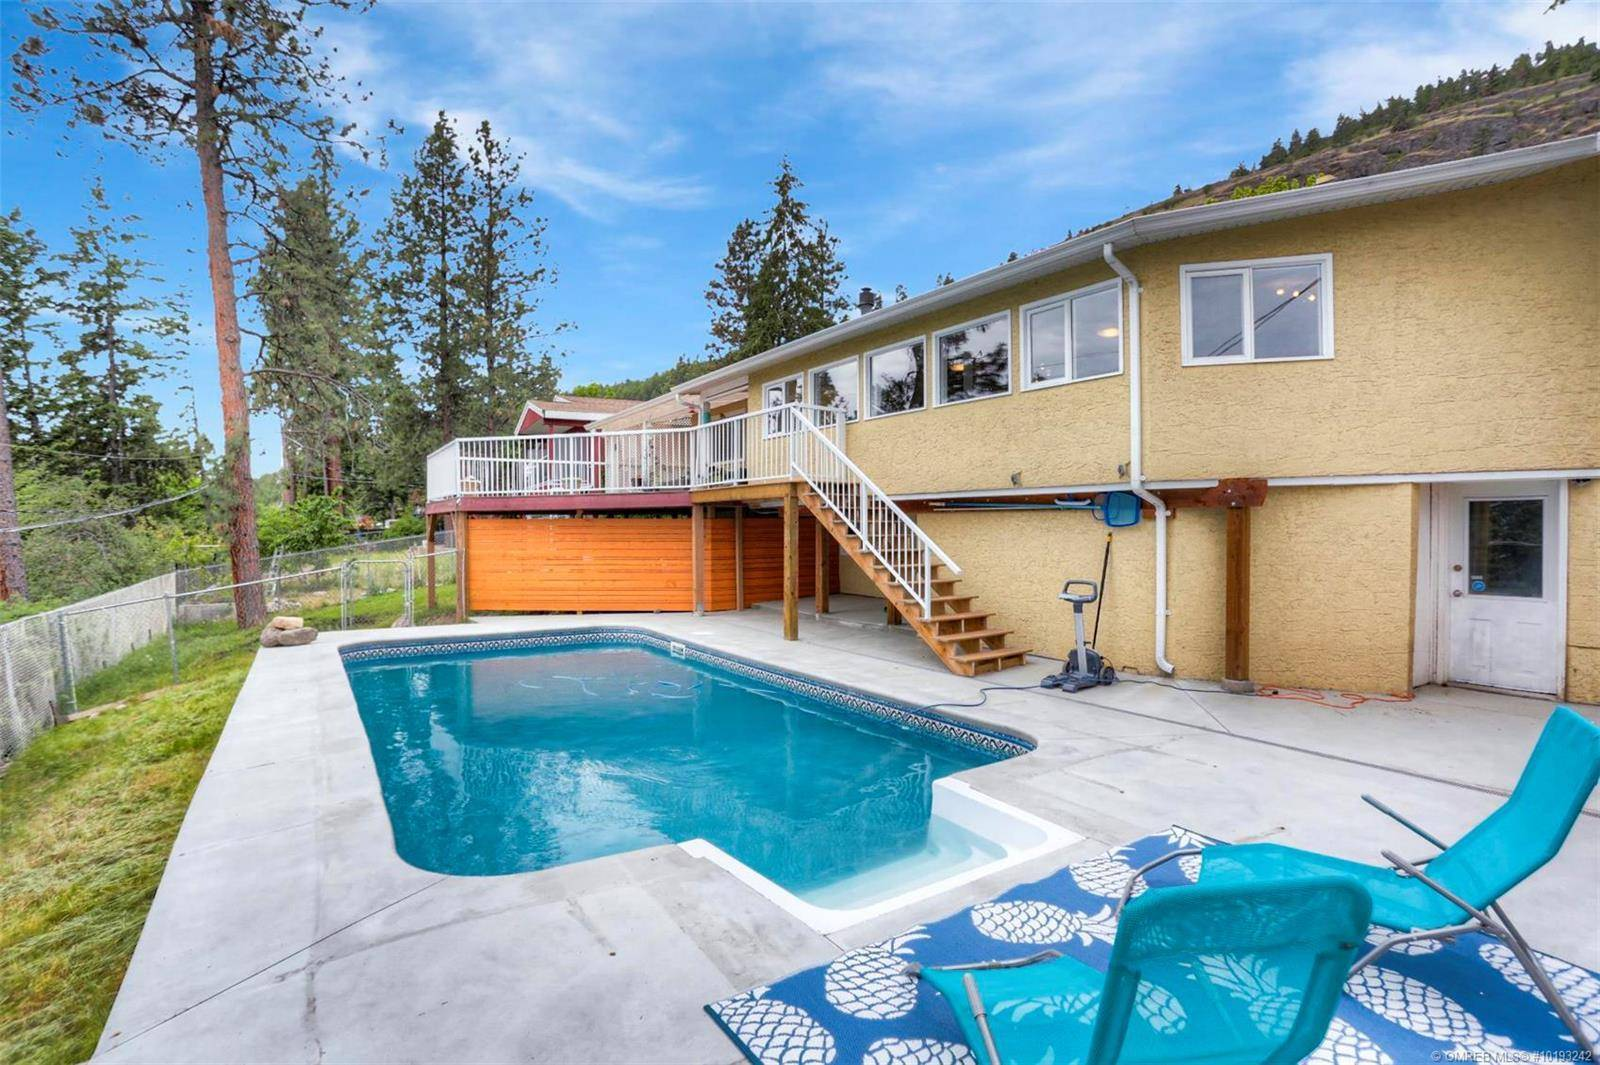 House for sale at 1279 Parkinson Rd West Kelowna British Columbia - MLS: 10193242